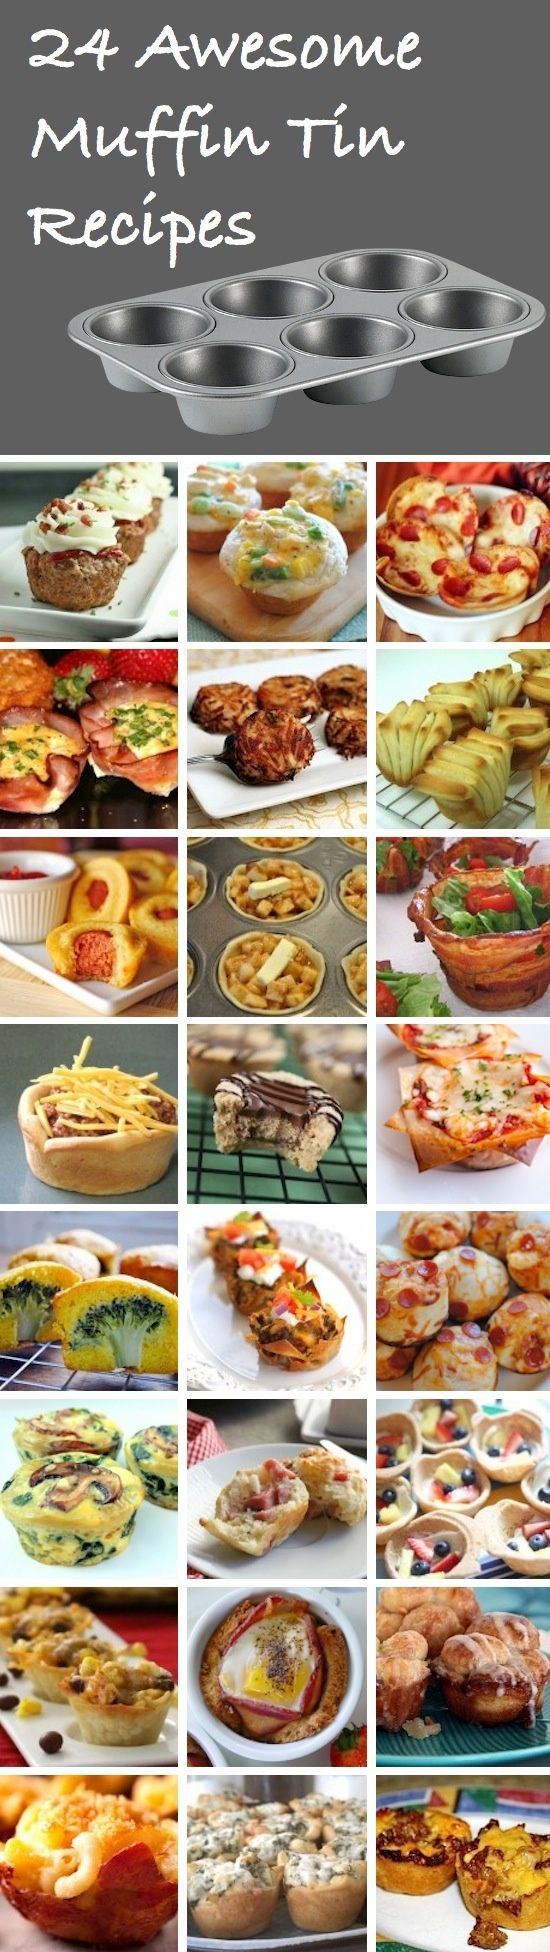 24 muffin tin recipes